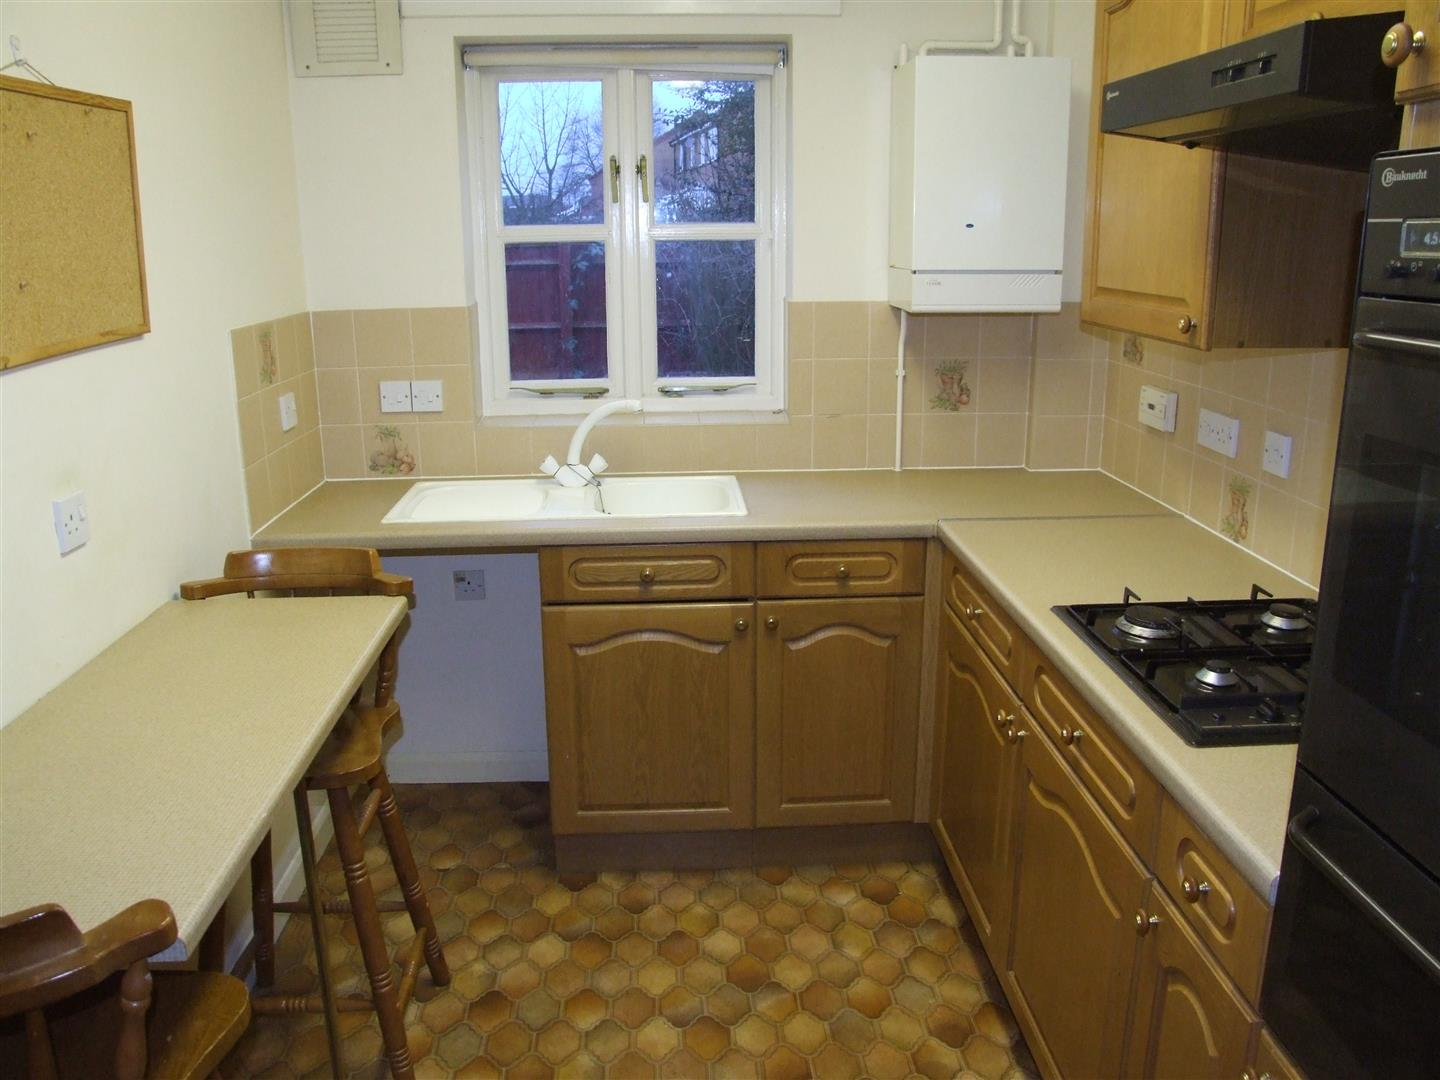 1 bed house to rent in Long Sutton Spalding, PE12 9RR  - Property Image 2